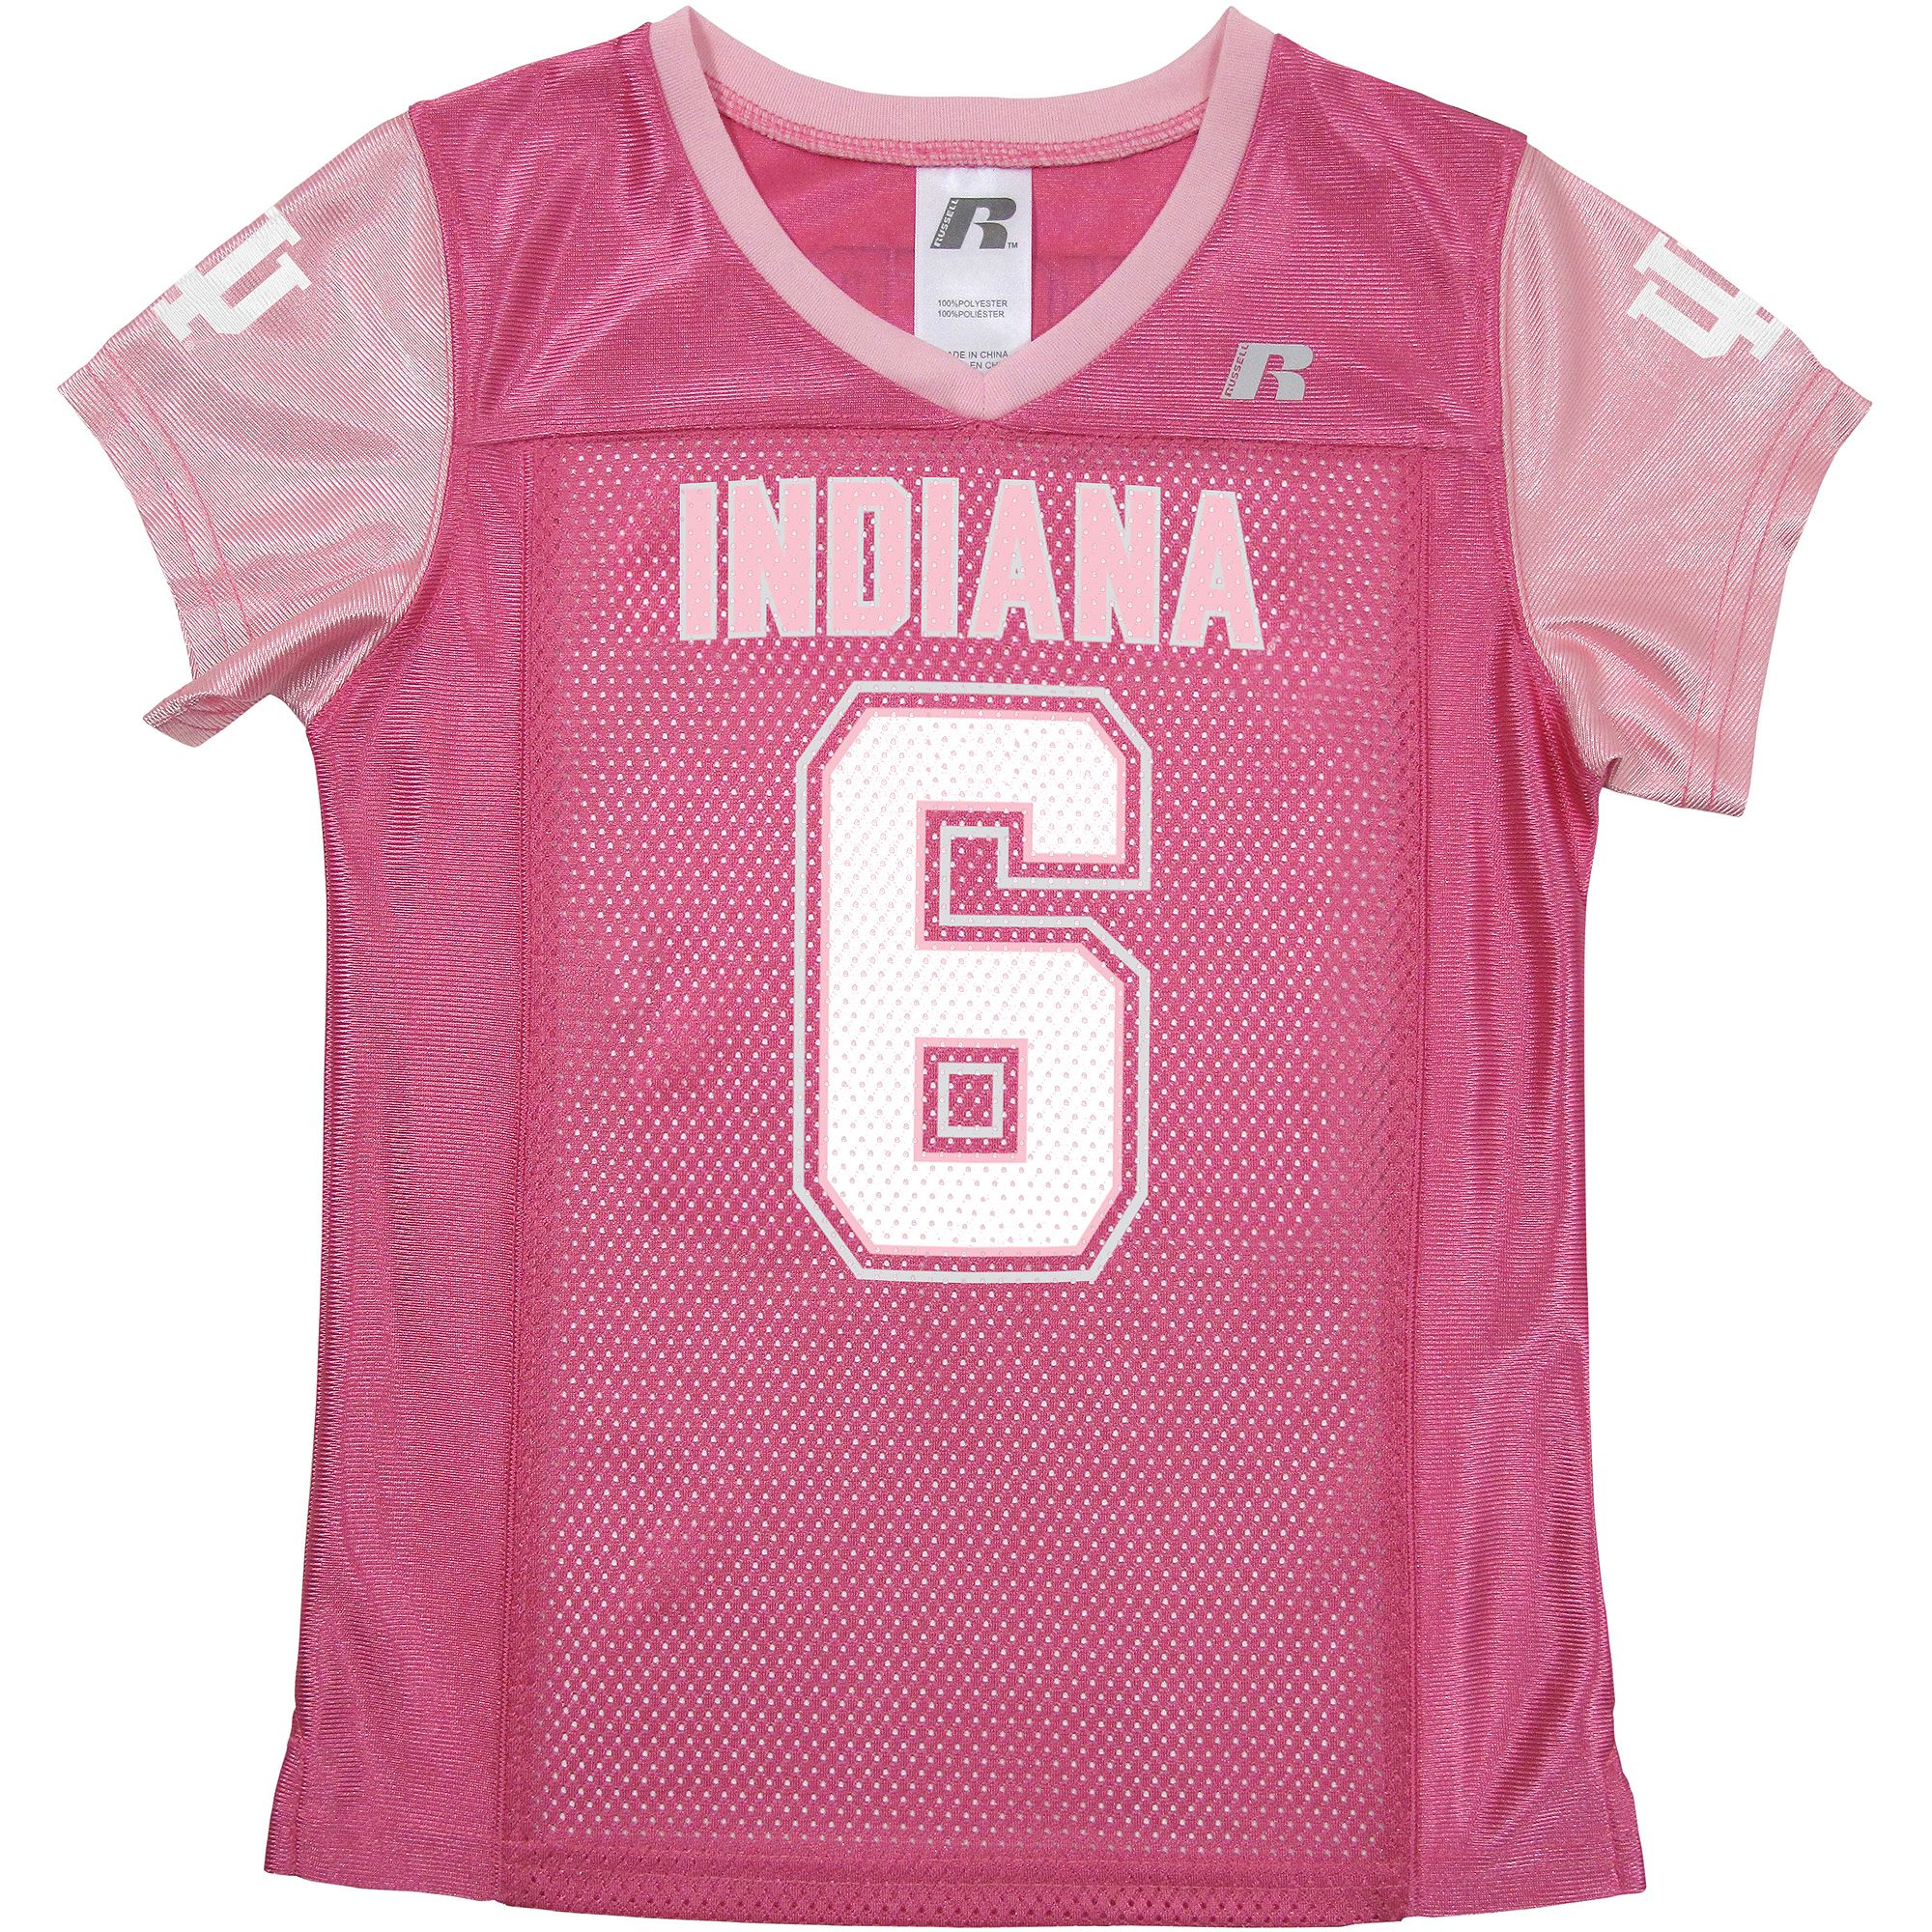 Russell NCAA Indiana Hoosiers, Girls Short Sleeve V-Neck Replica Jersey